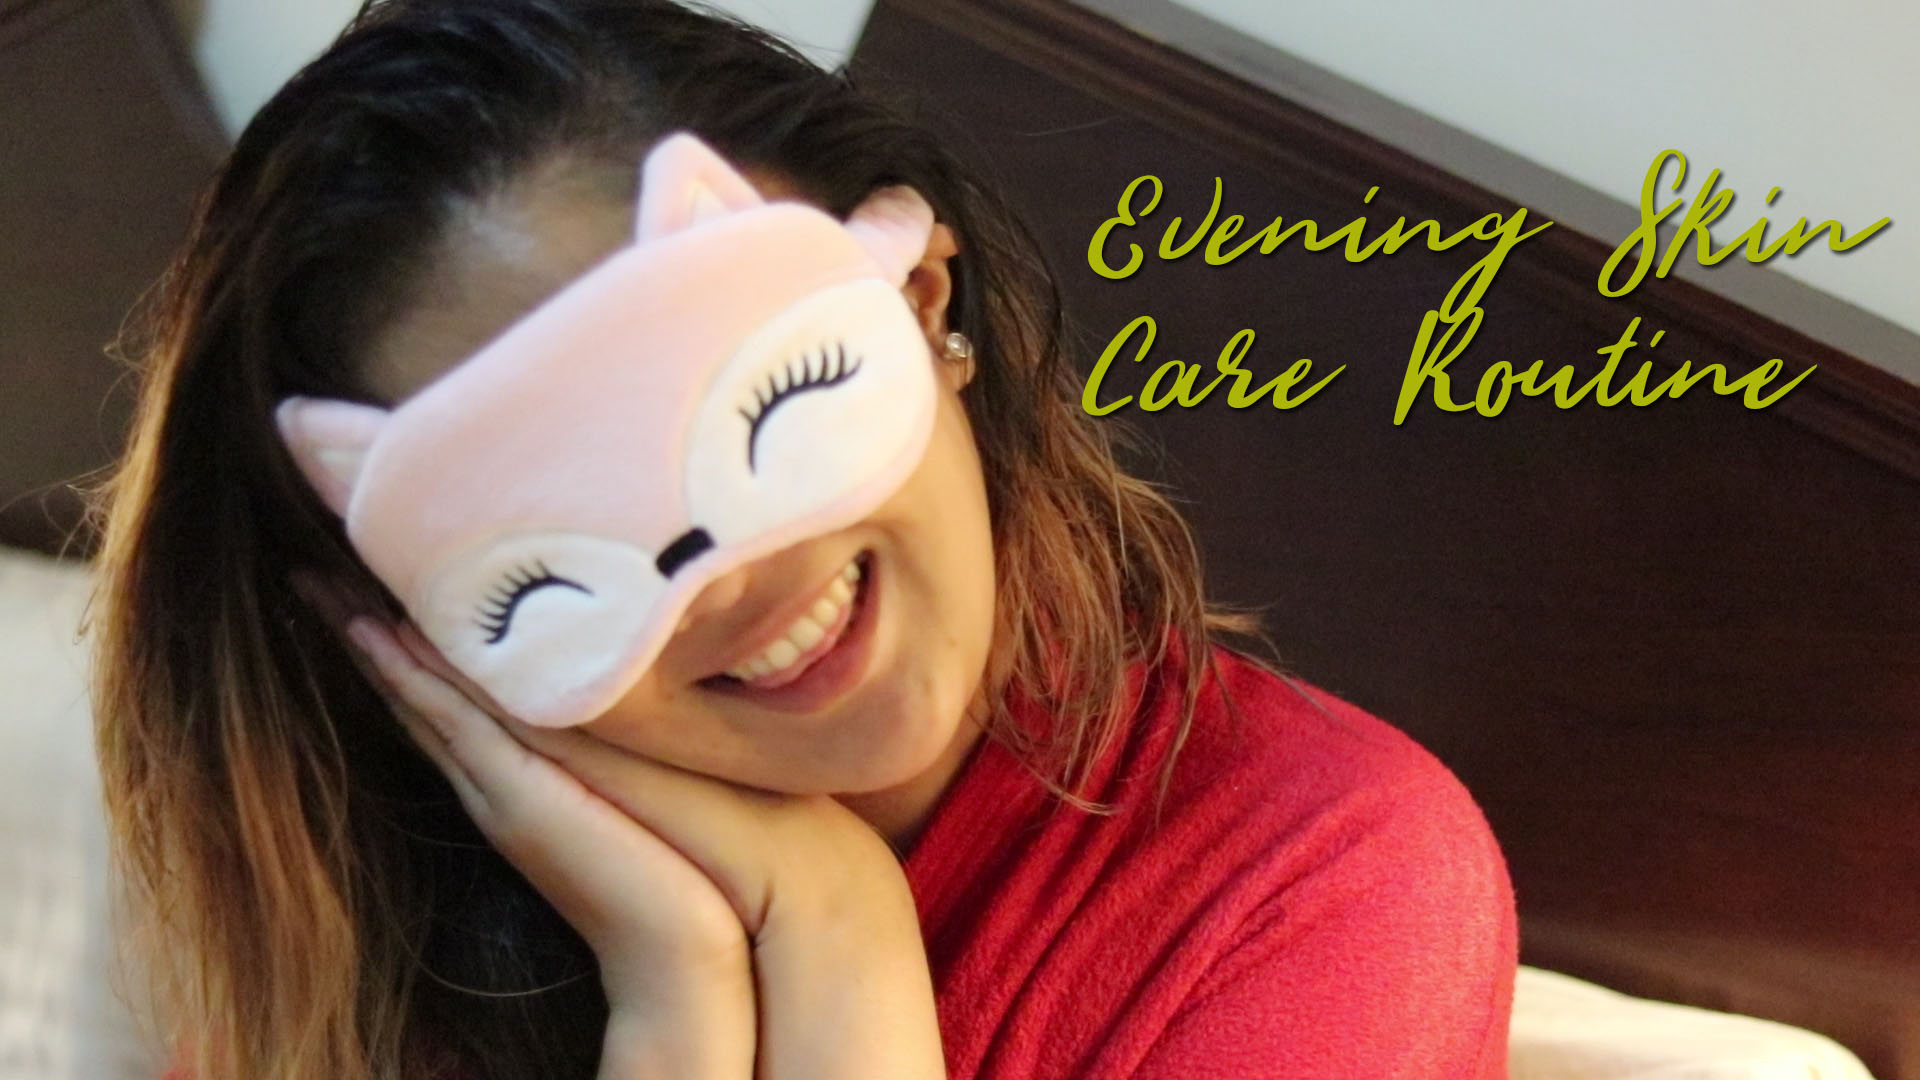 Korean Evening Skin Care Routine